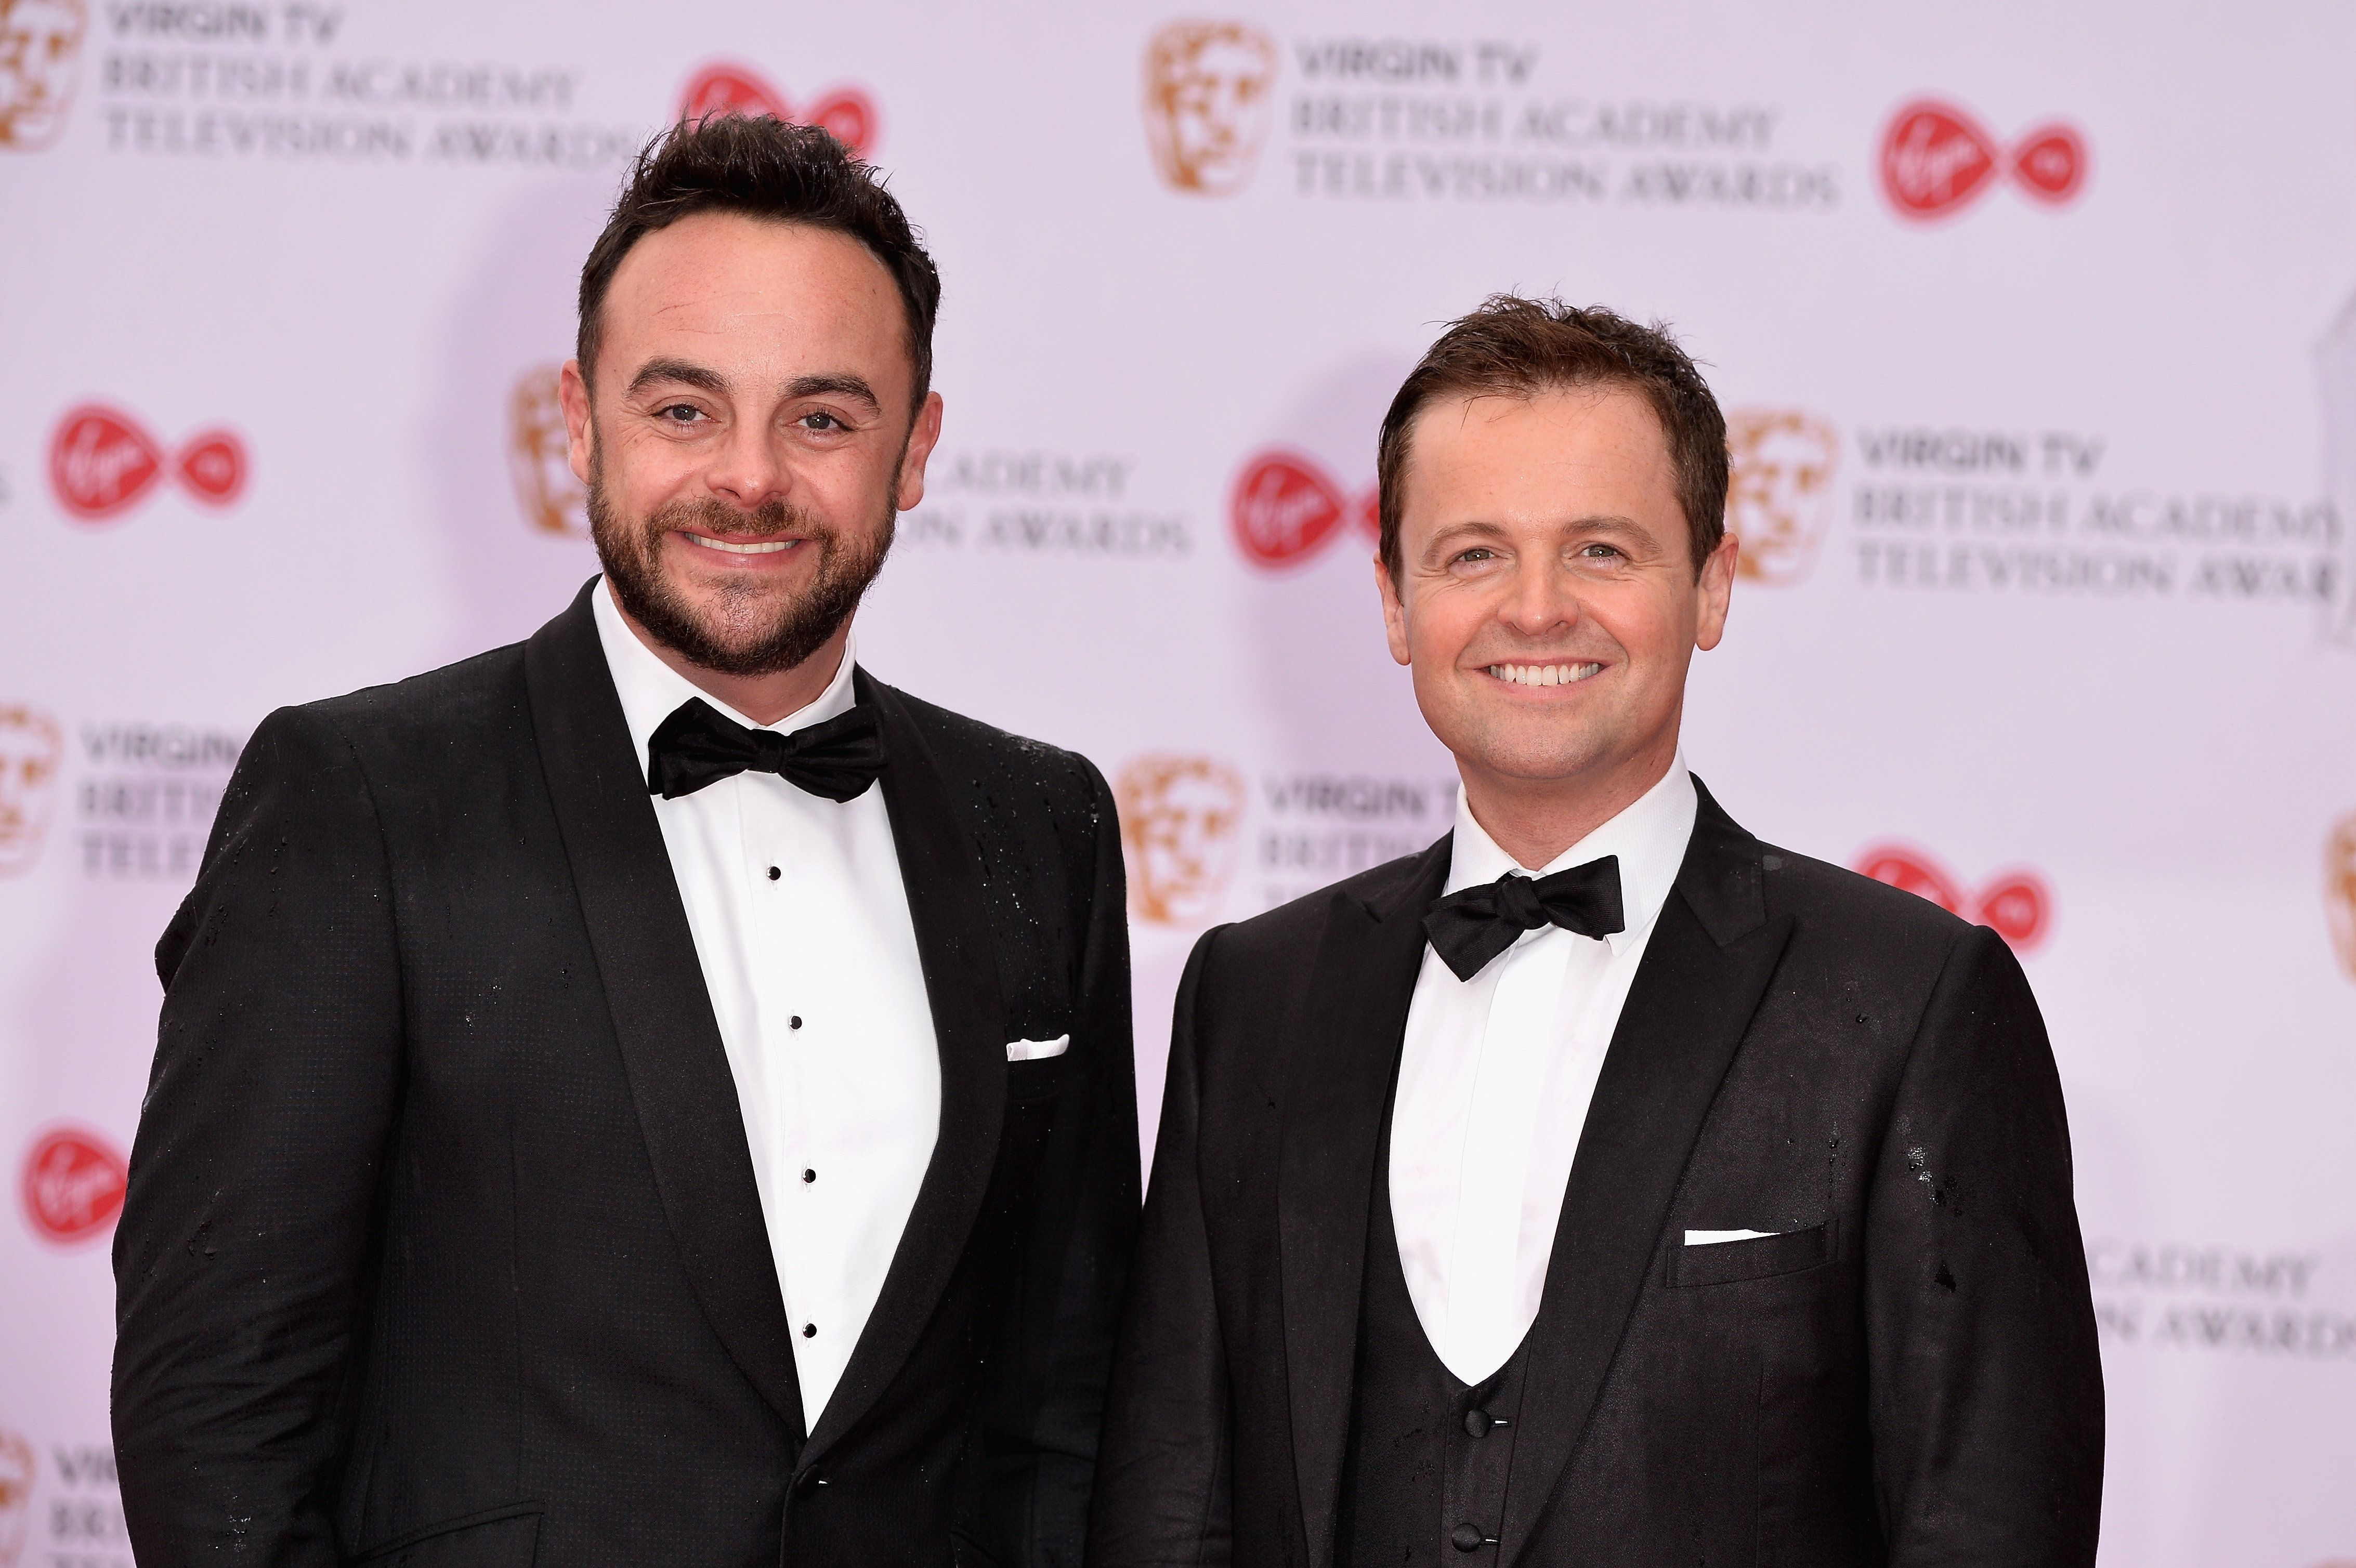 ITV 'Expecting' Ant McPartlin To Host 'I'm A Celeb' 2017, Confirms Channel